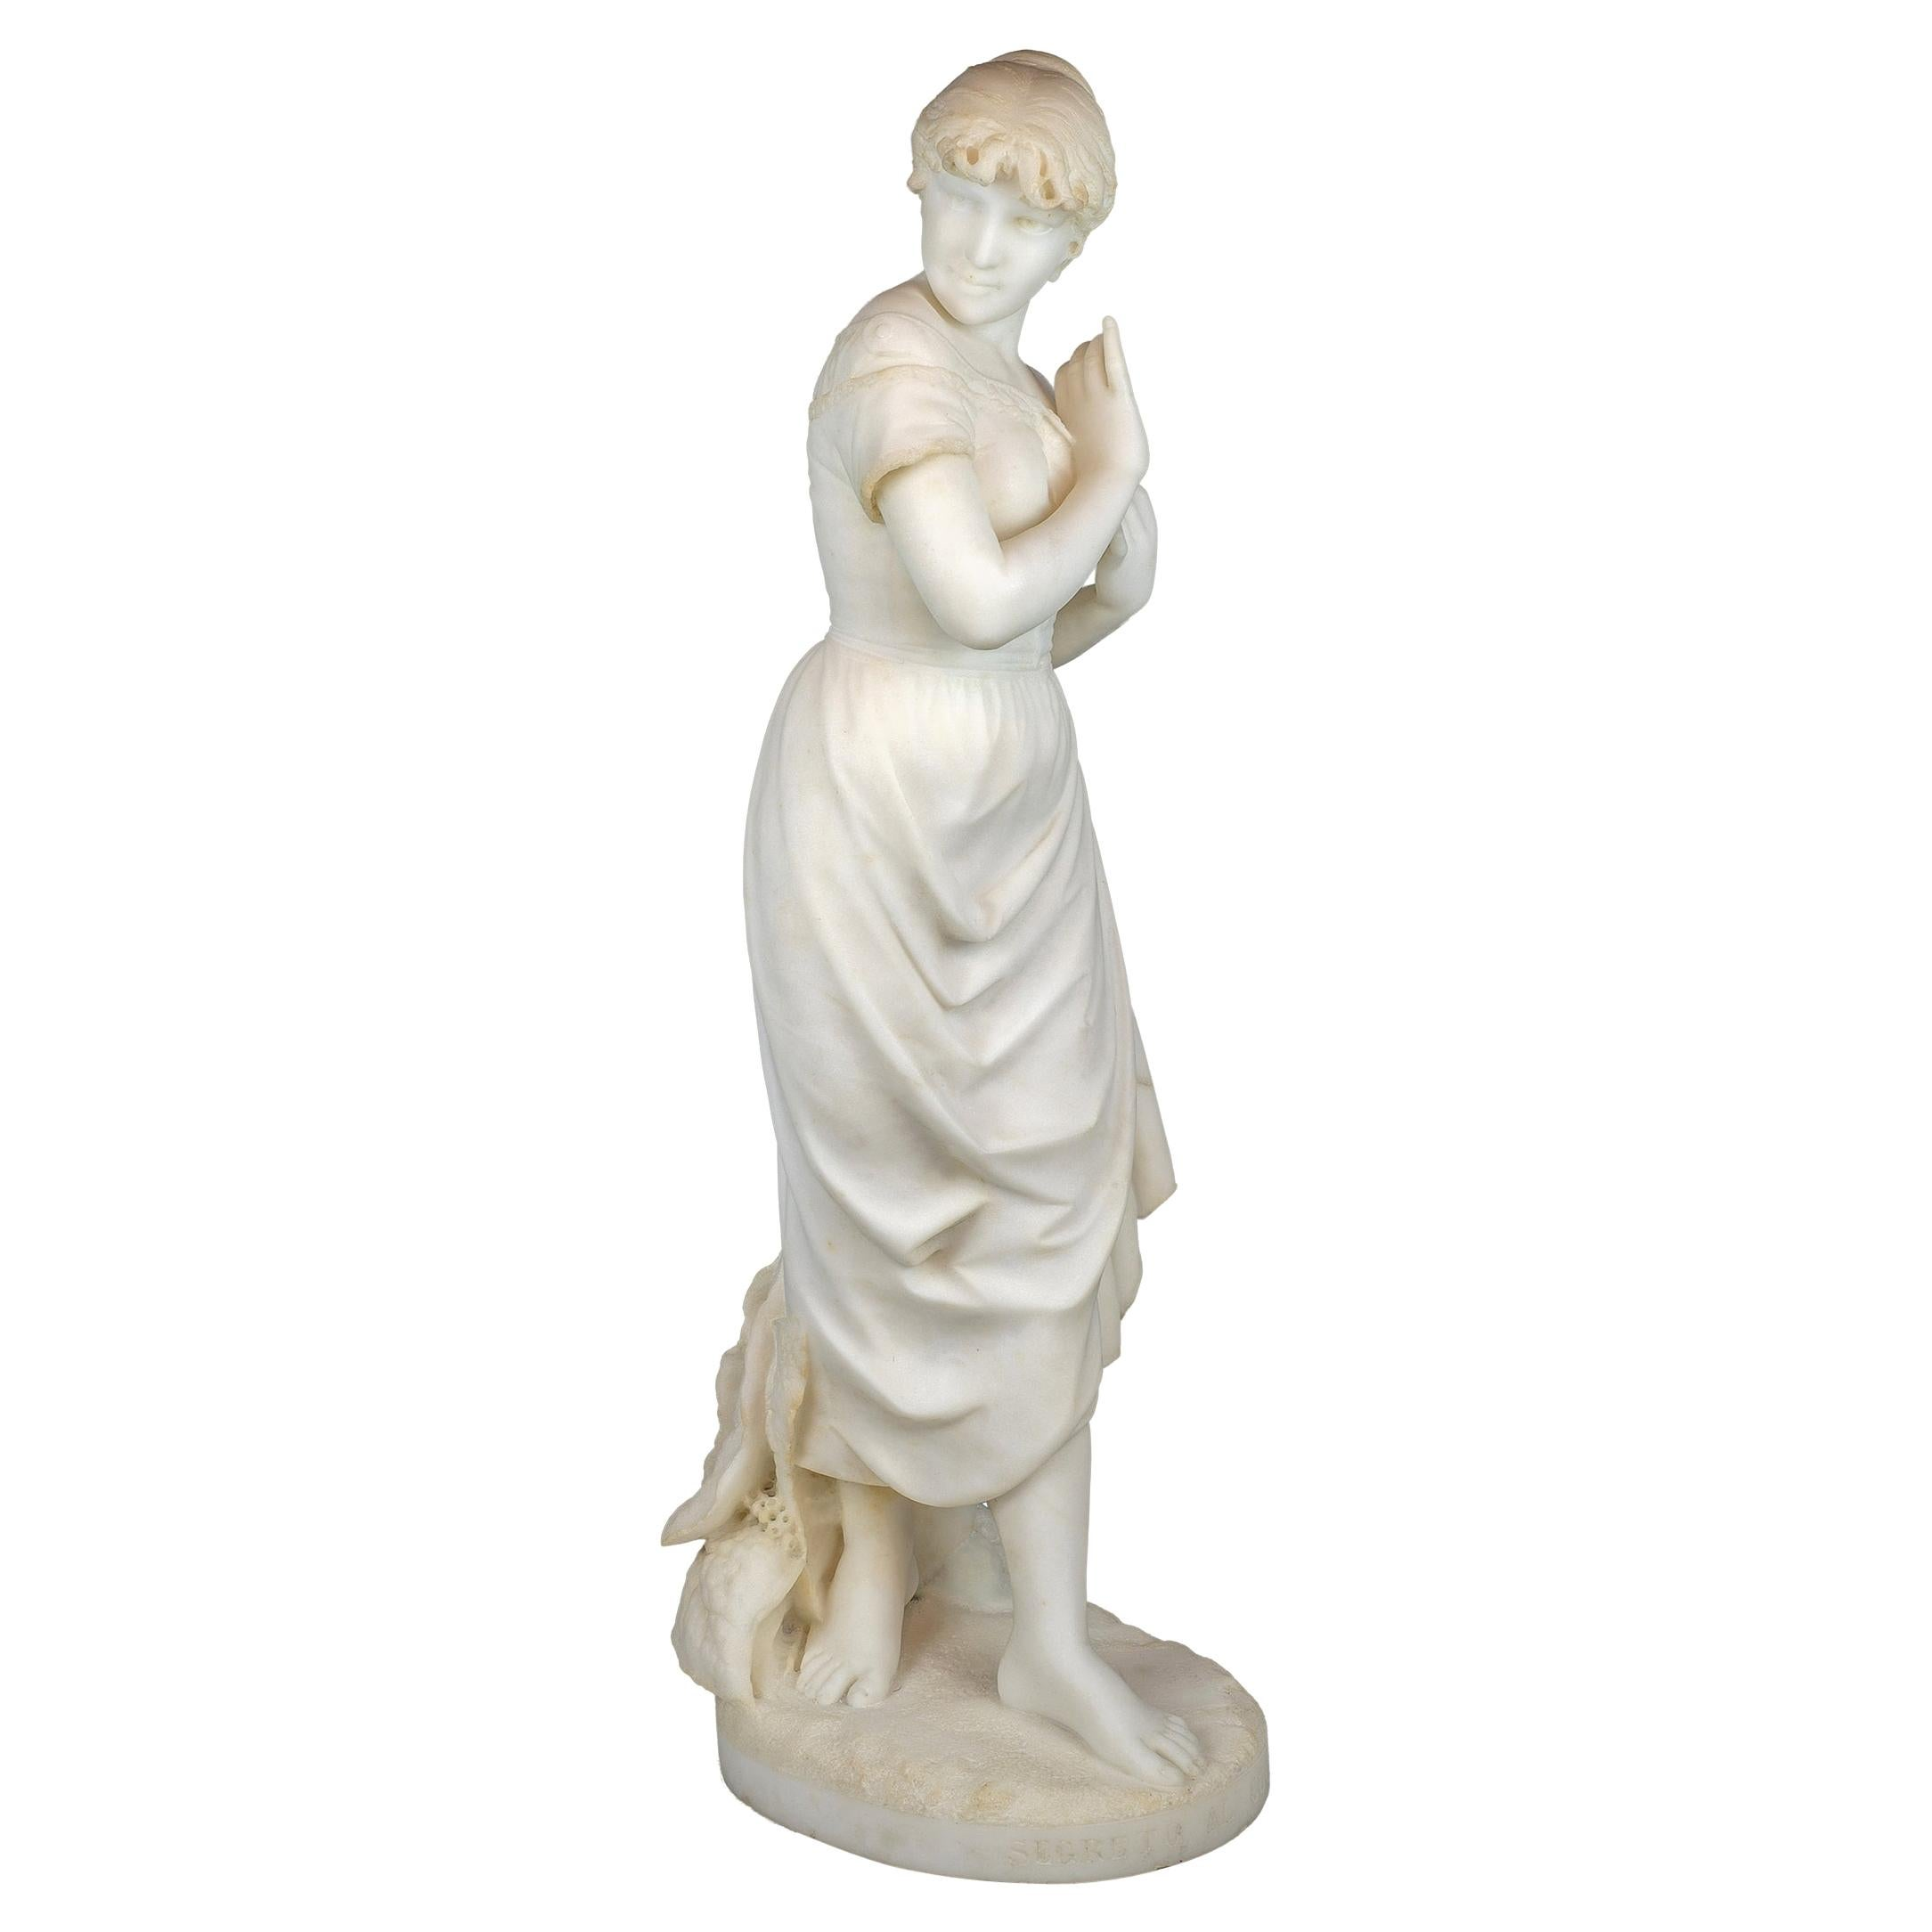 White Marble Sculpture Statue of a Maiden by Cesare Lapini